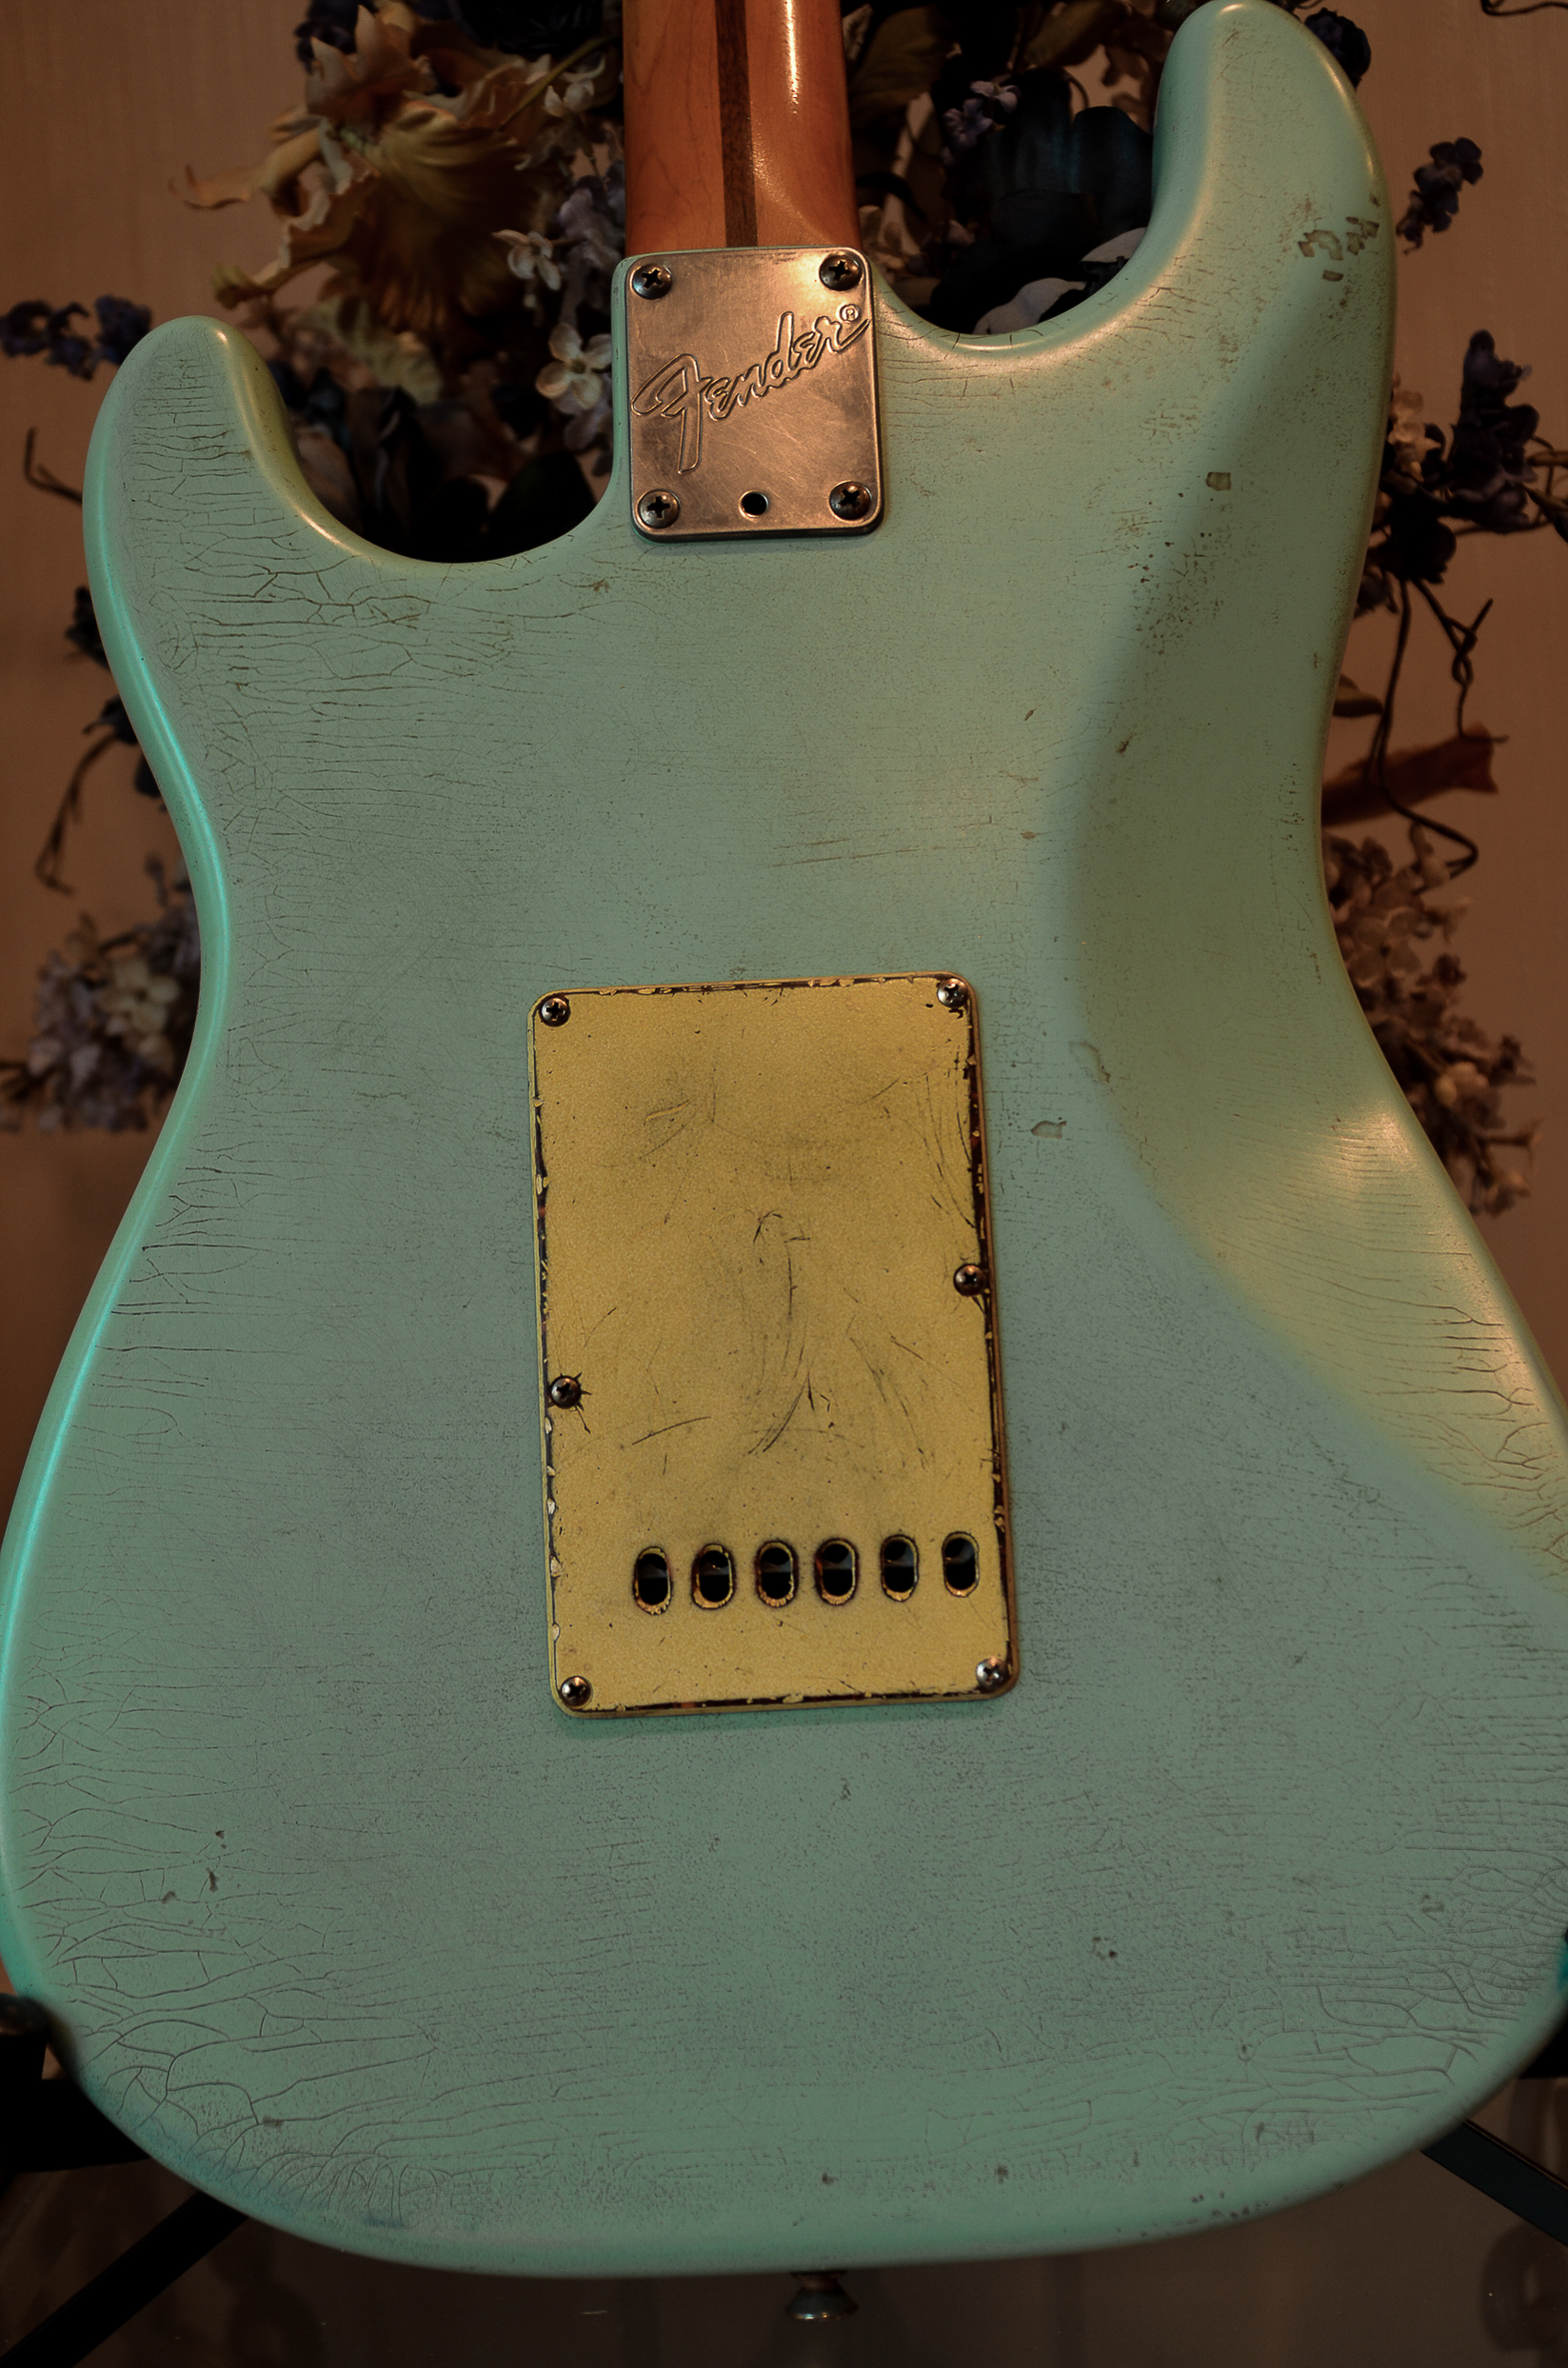 Fender Strat Relic Surf Green Finish Checking Guitarwacky.com